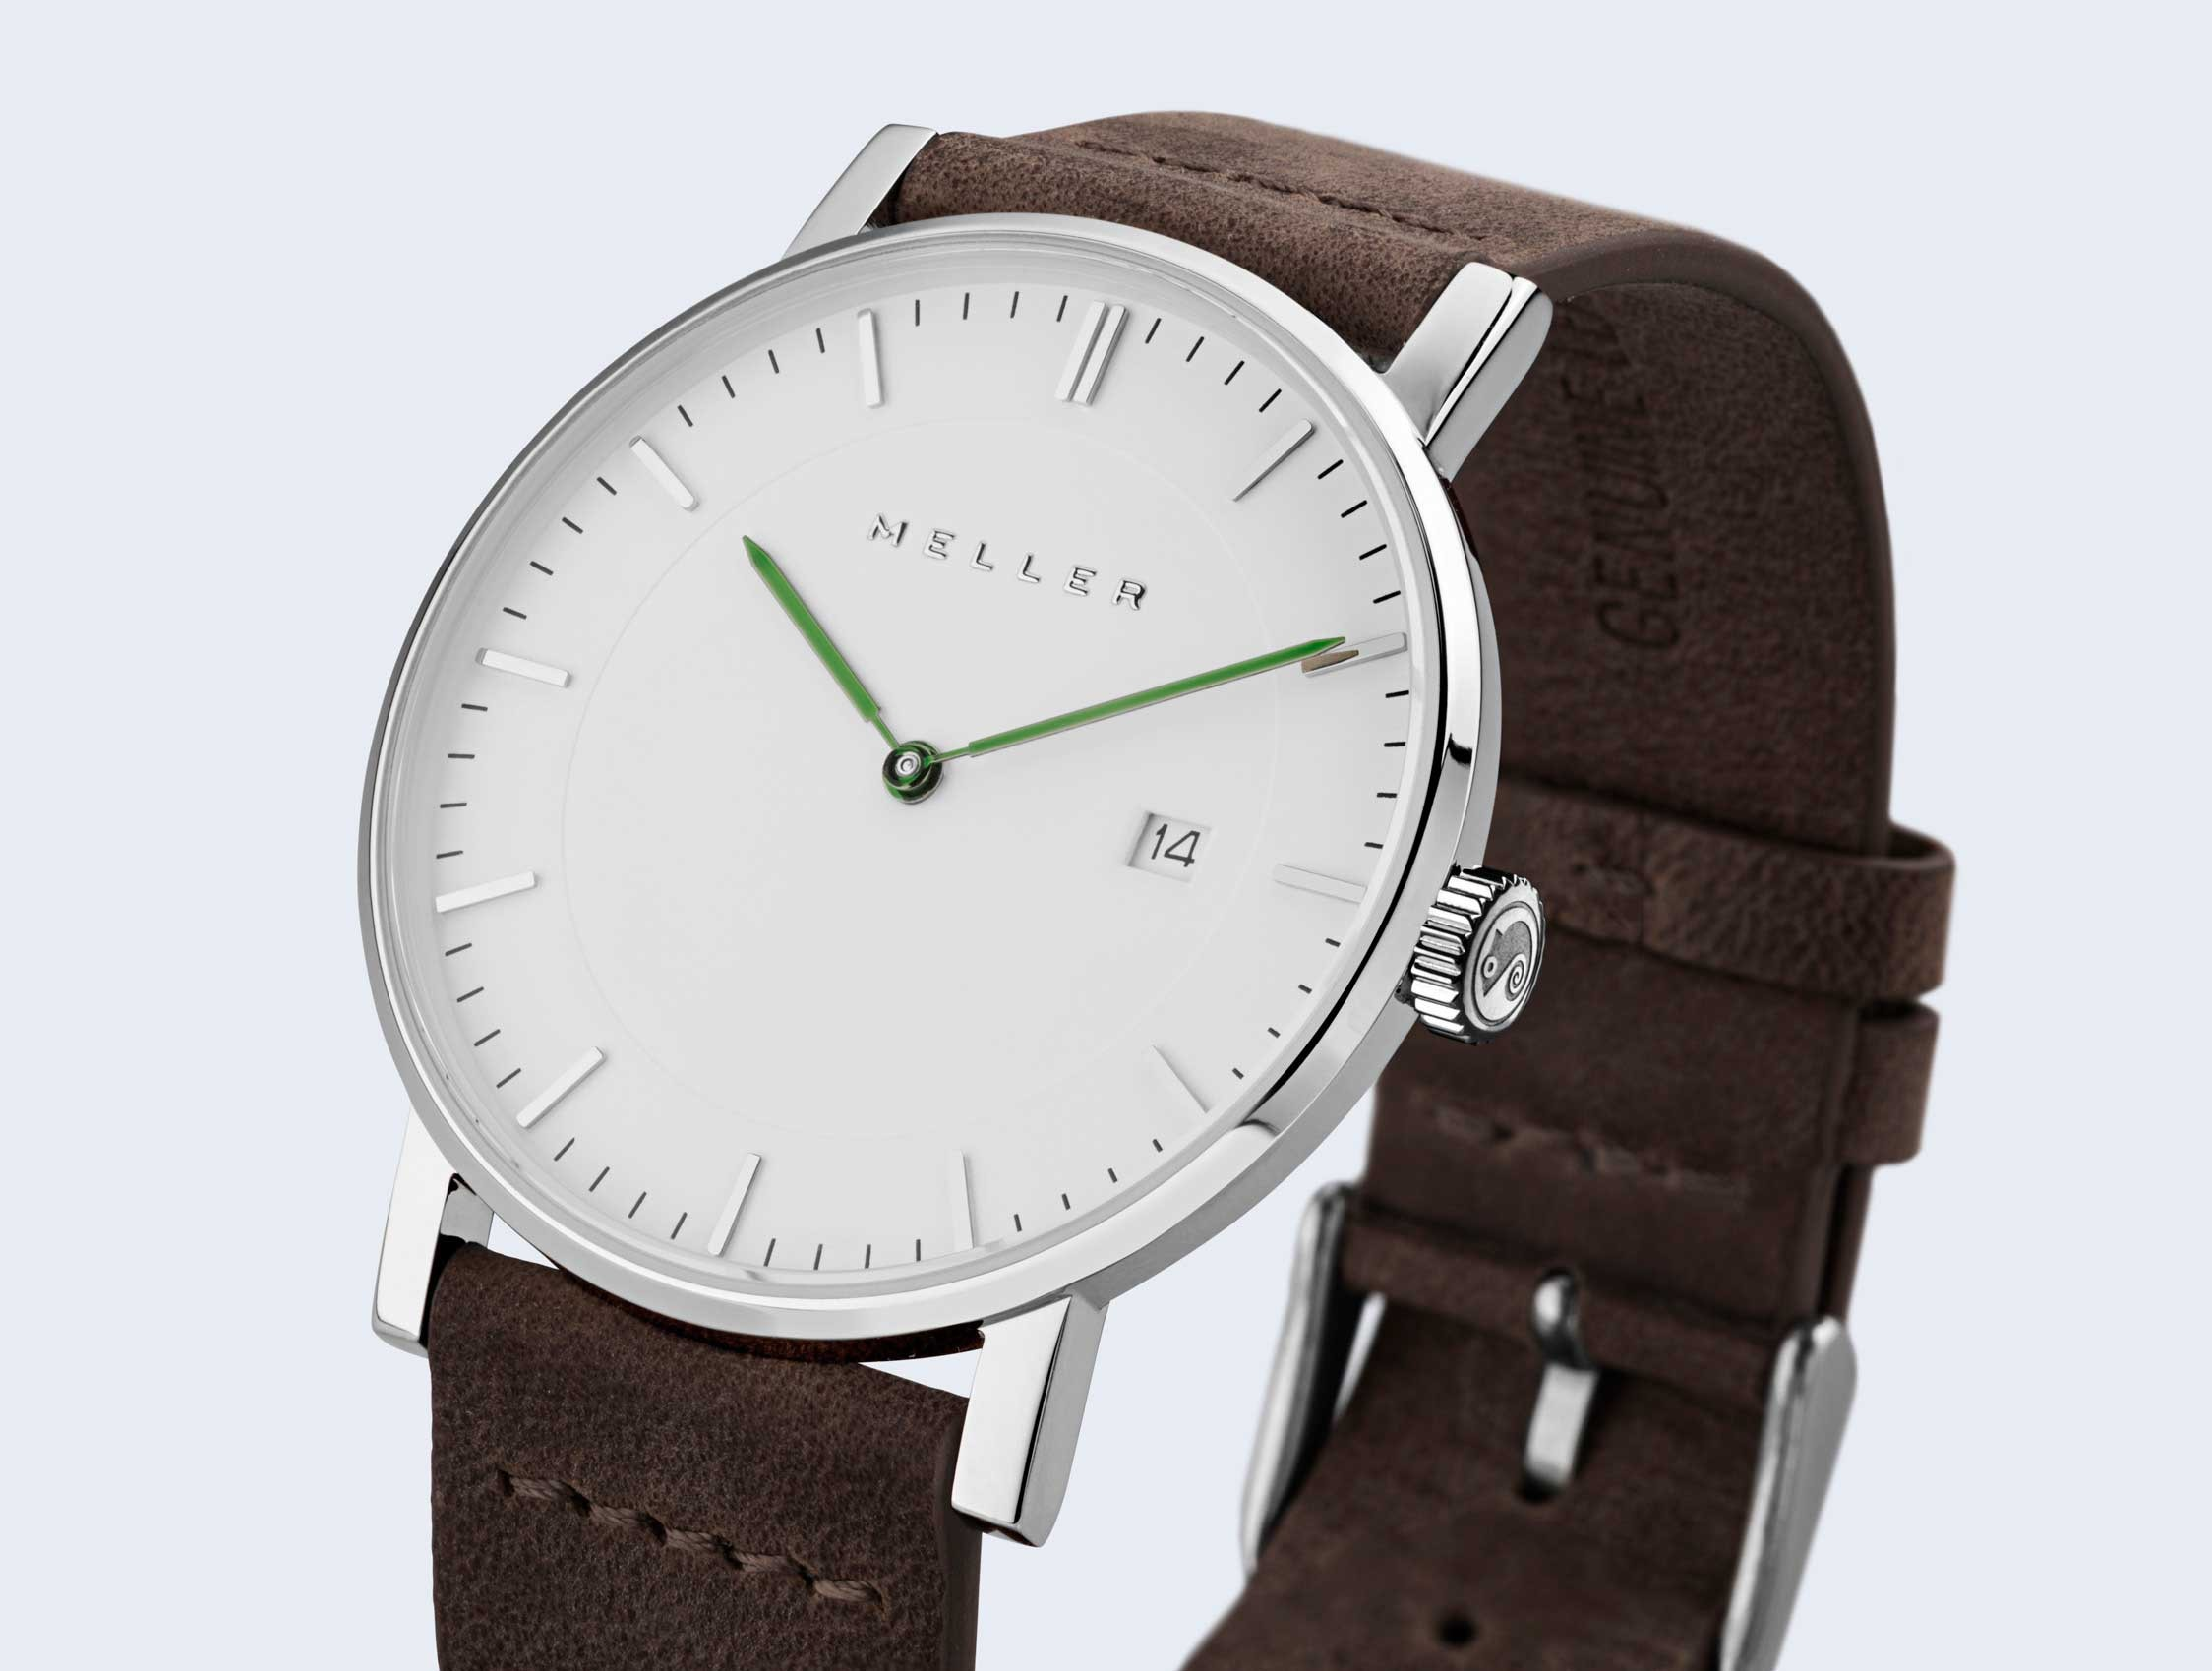 Reloj blanco grey earth web